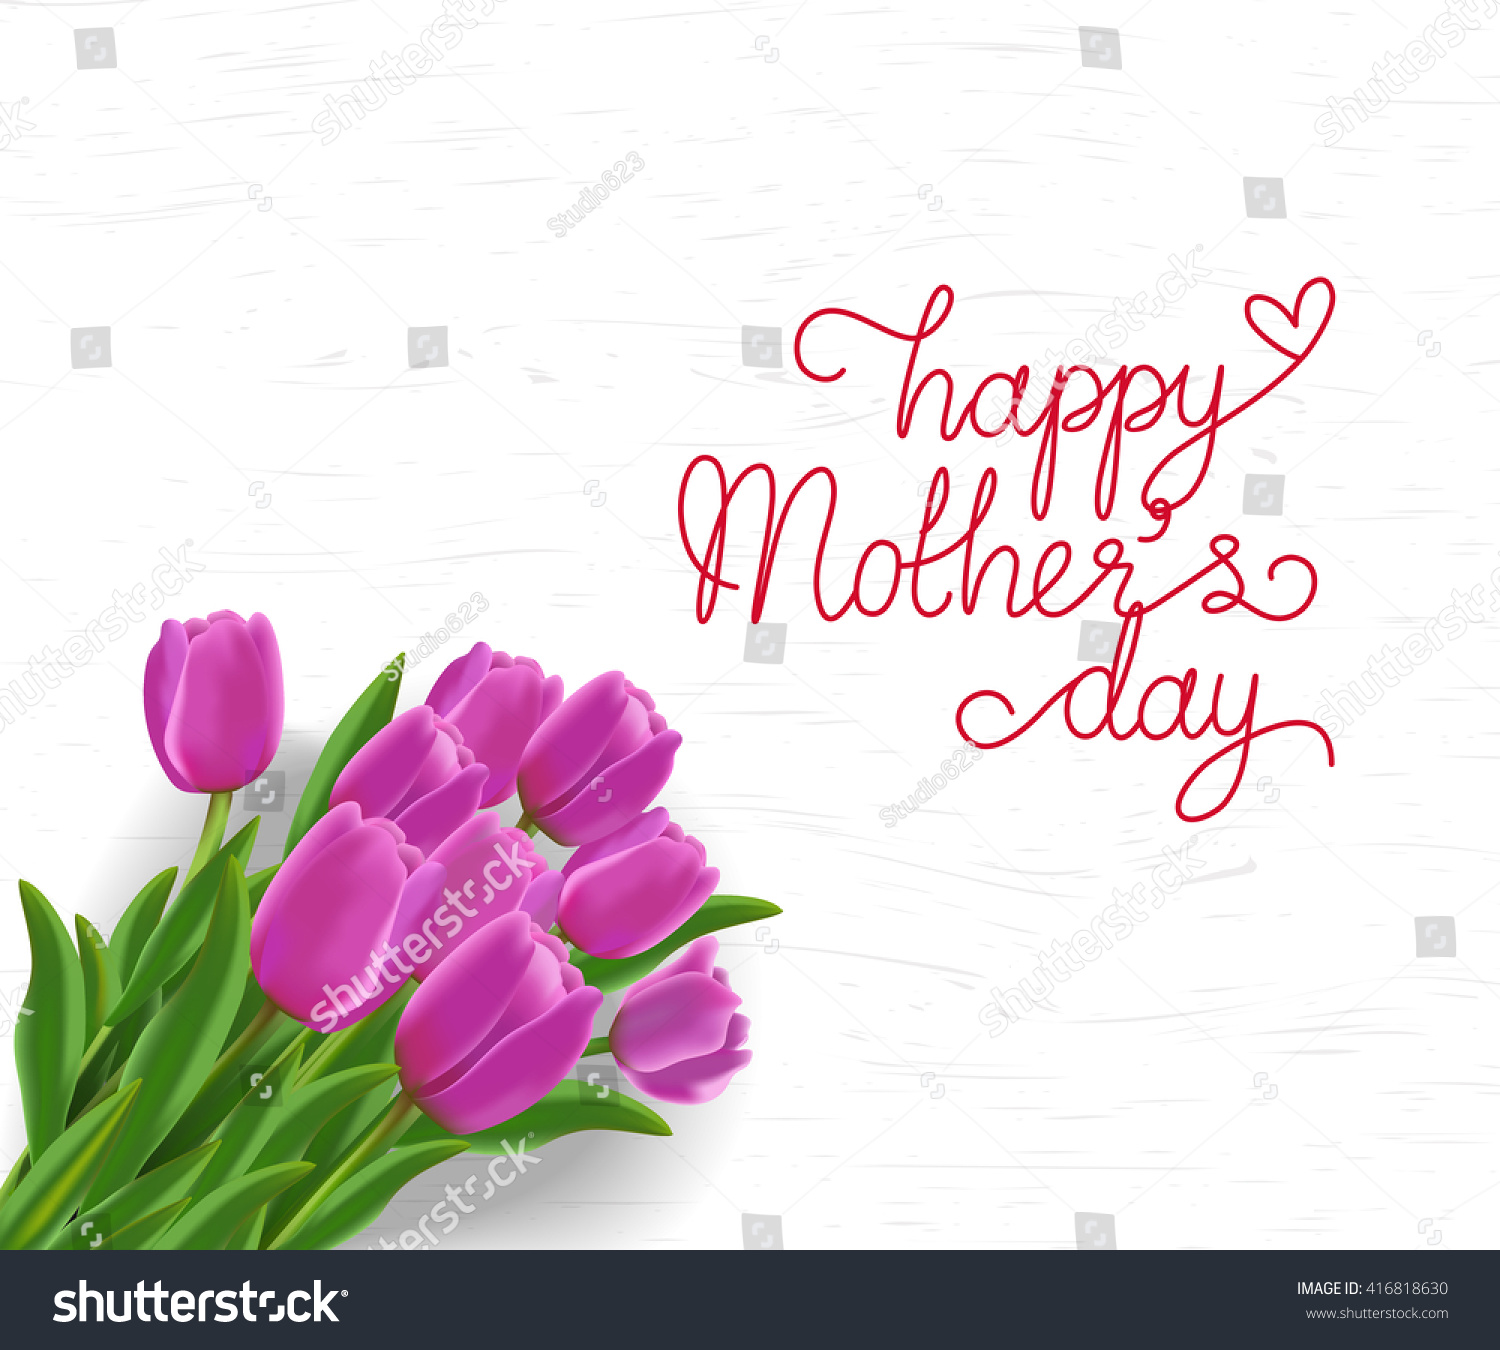 Bouquet Of Pink Tulips With Happy Mother Day Wording On White Wooden